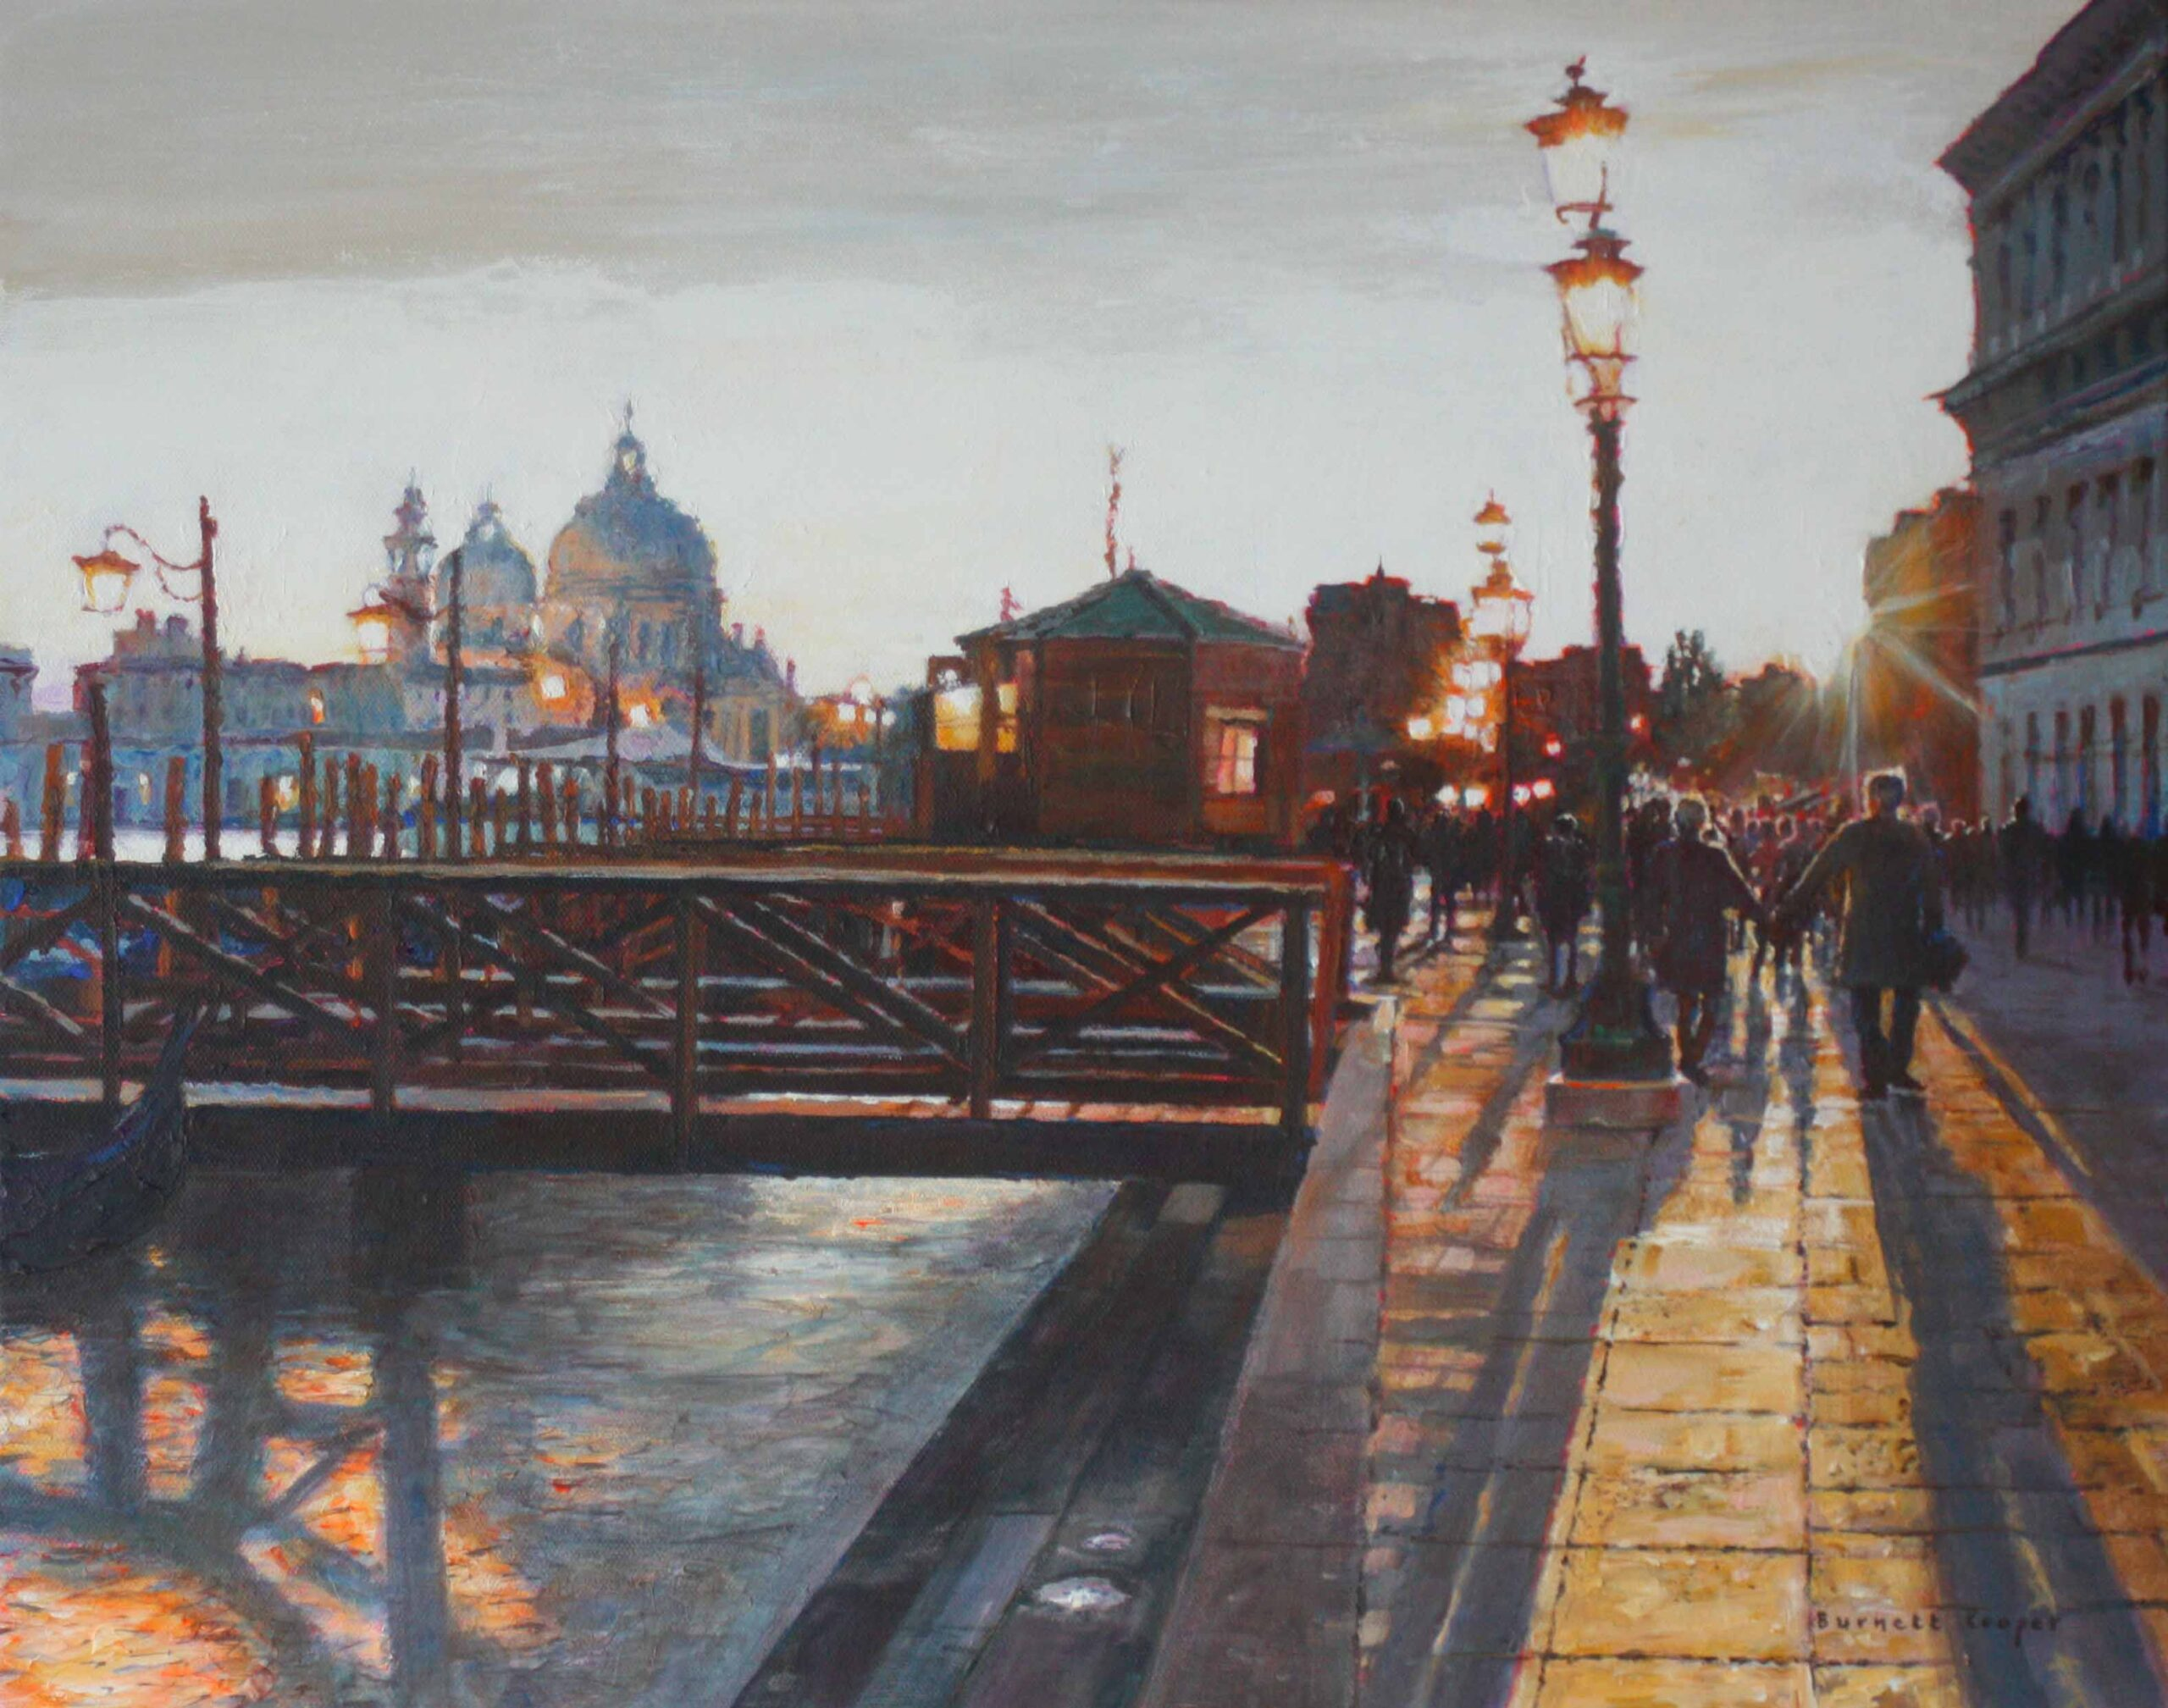 Afternoon stroll, Venice. Hilary Burnett Cooper. Jackson's Painting Prize.